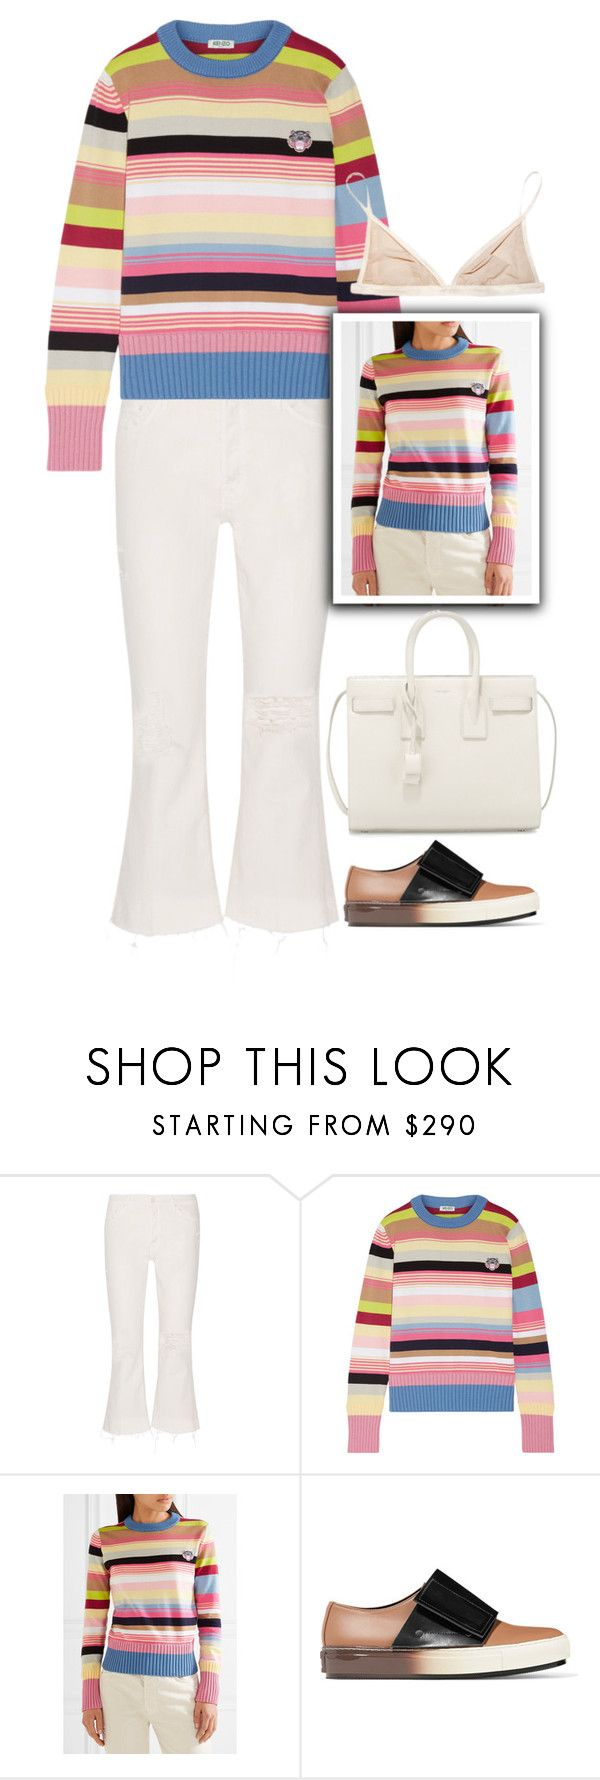 """1252"" by melanie-avni ❤ liked on Polyvore featuring Mother, Kenzo, Marni and Yves Saint Laurent"